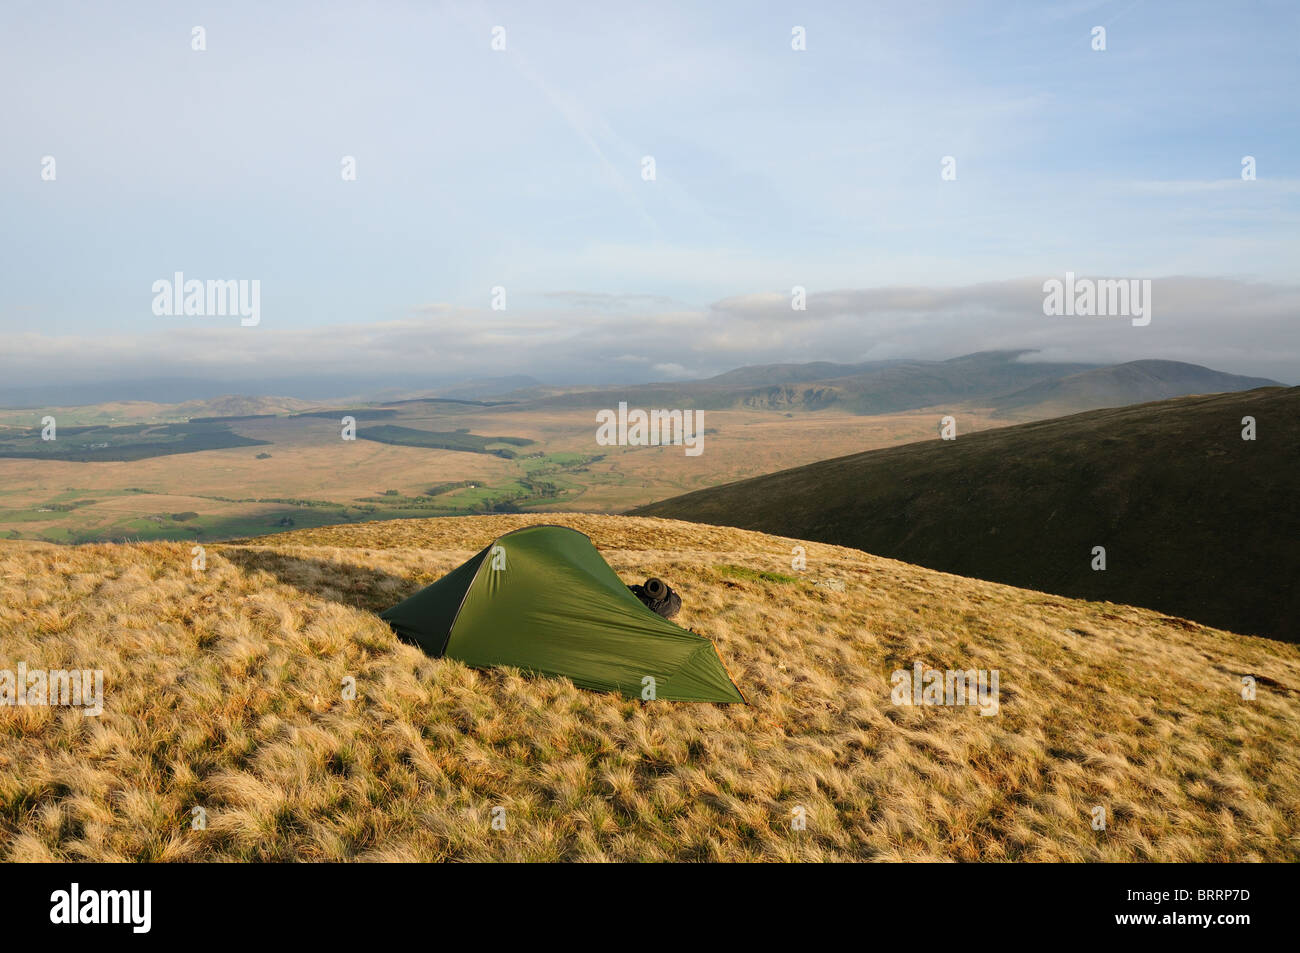 Wild camping on White Horse Bent below Bannerdale Crags in the English Lake District - Stock Image